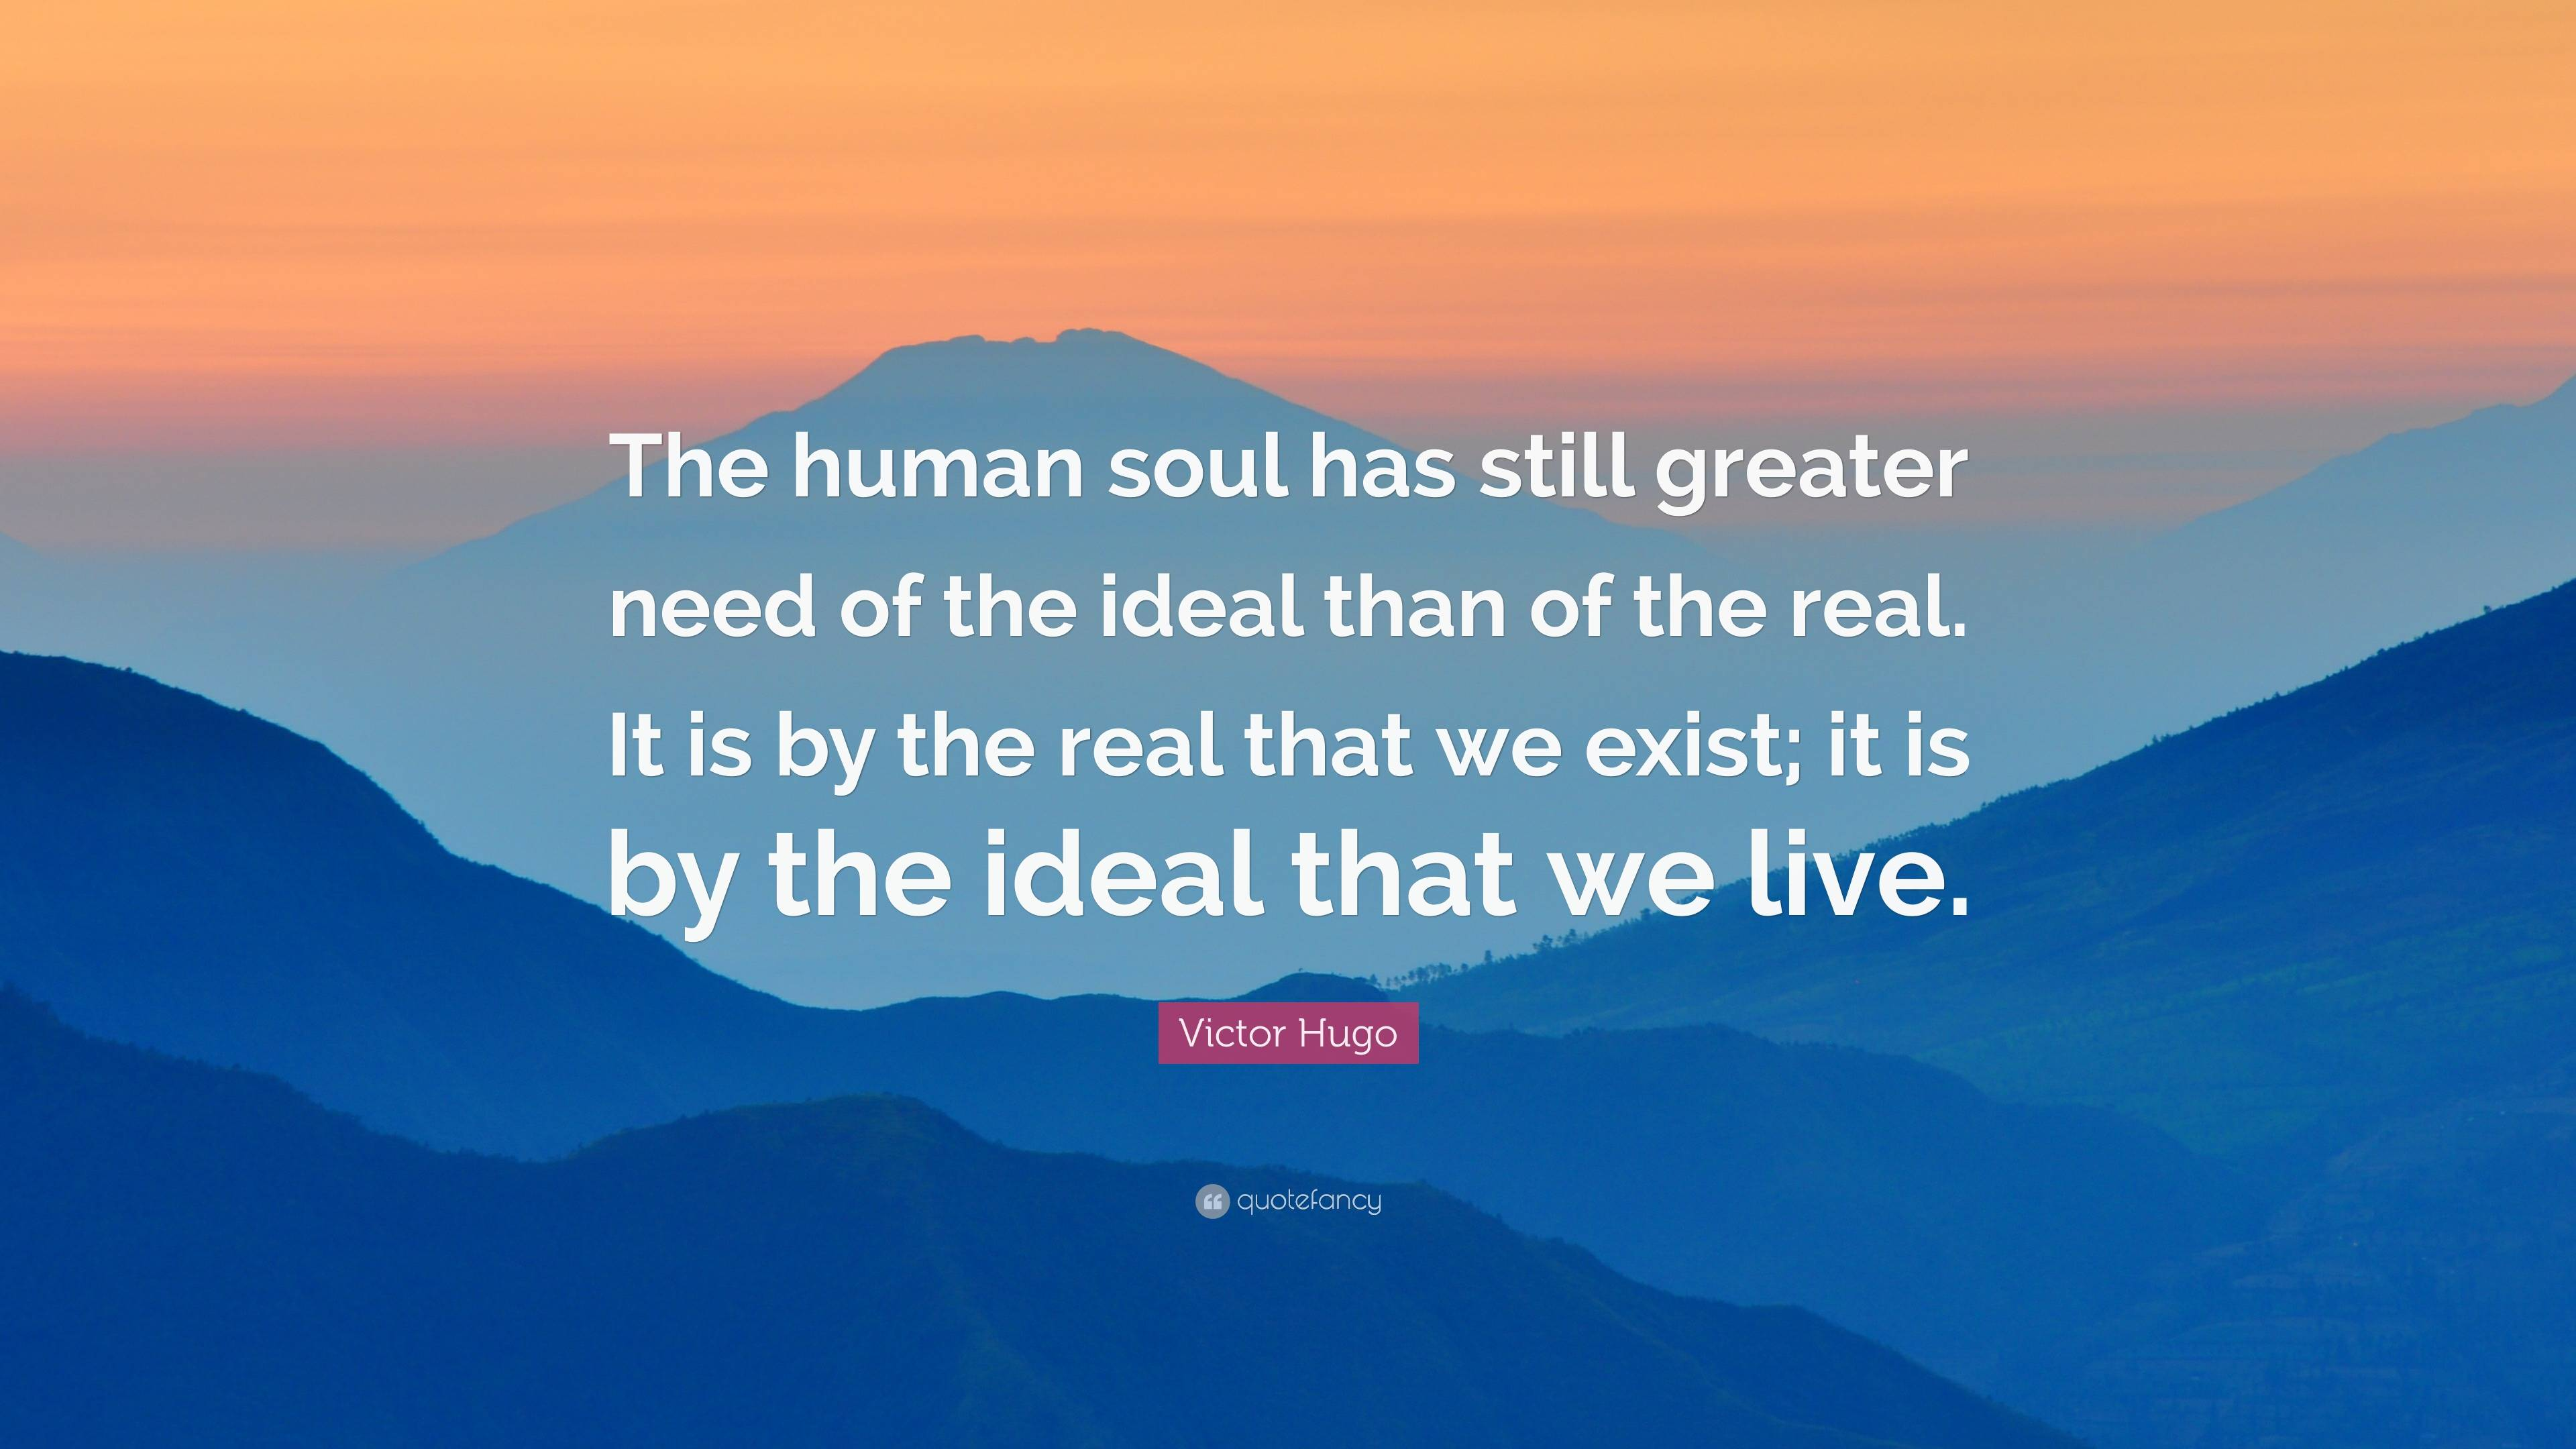 """The human soul has still greater need of the ideal than of the real. It is by the real that we exist, it is by the ideal that we live."" – Victor Hugo [3840 x 2160]"